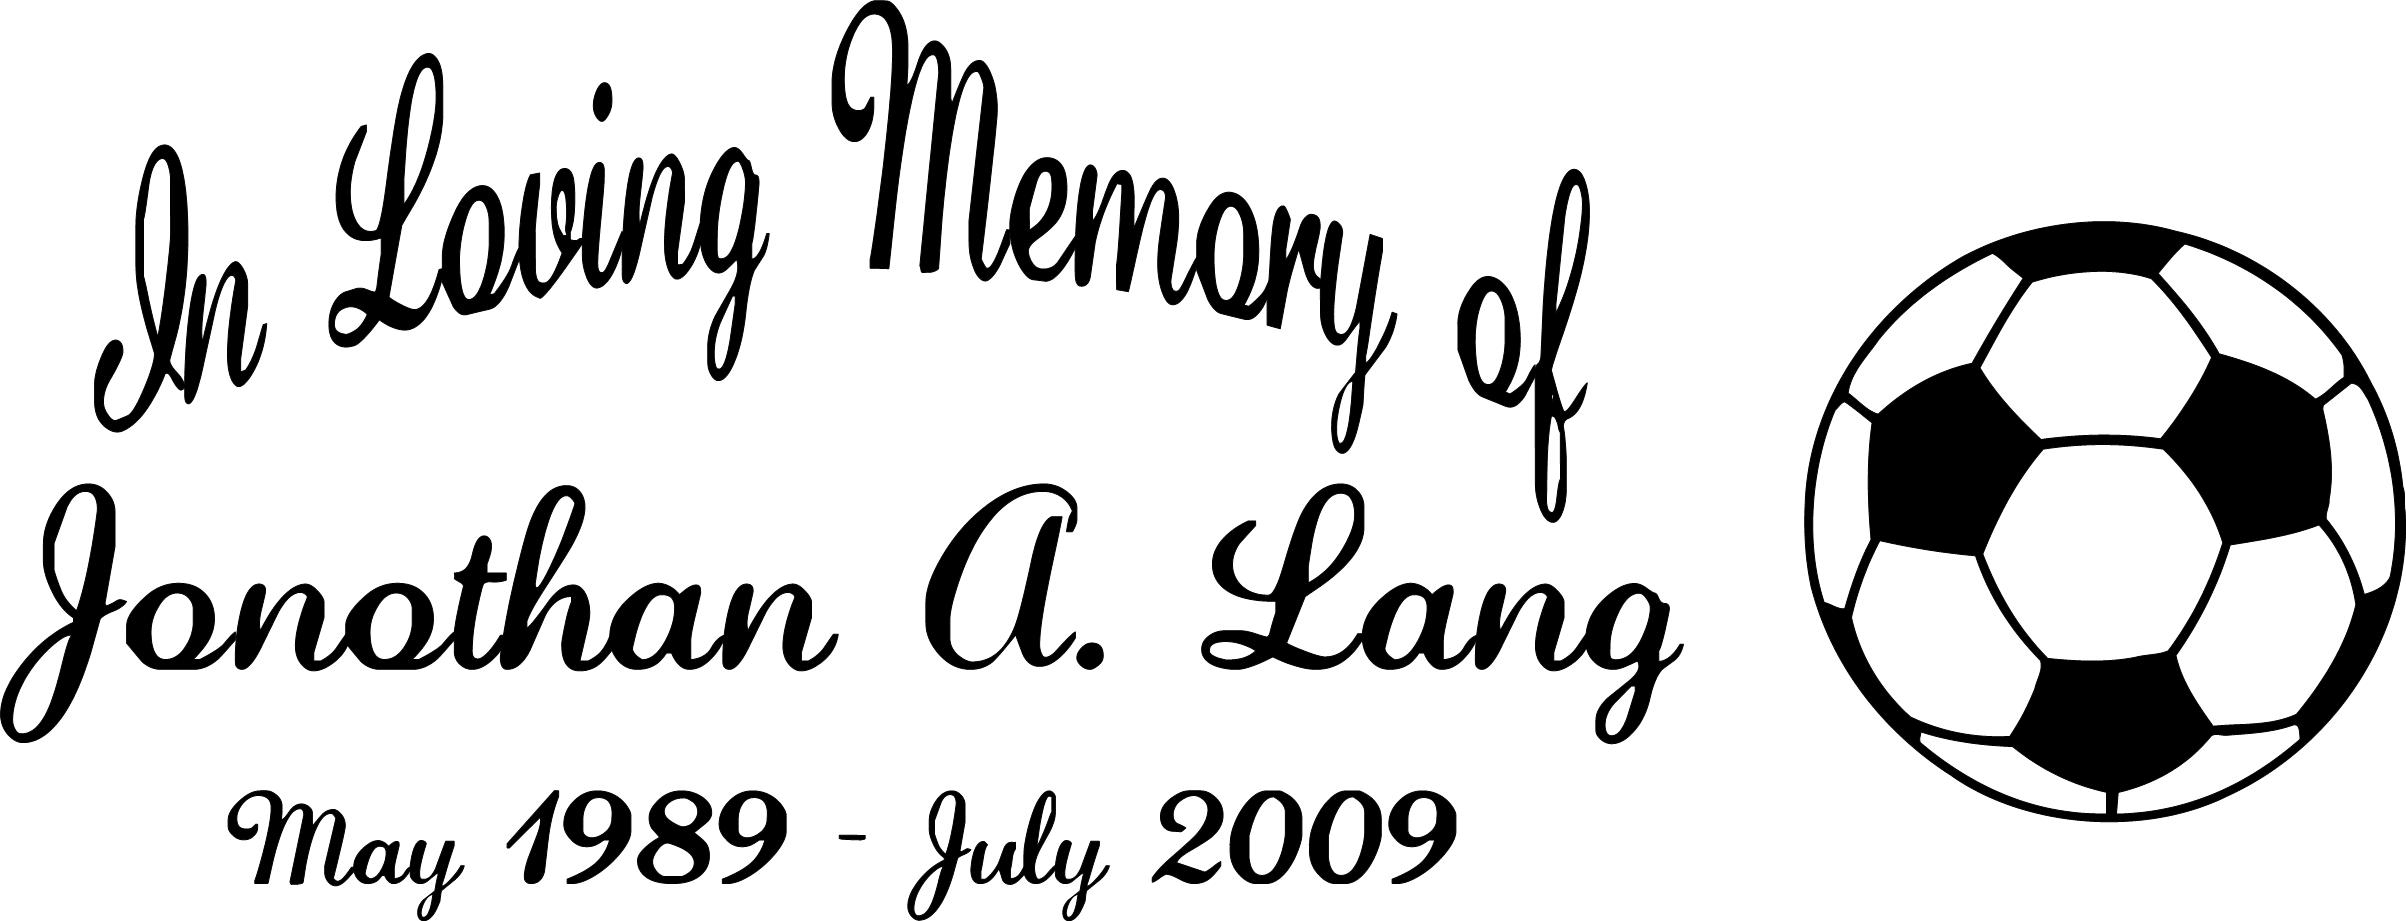 In Loving Memory Of Sports Decal Memorial Car Stickers Window - Window decals in memory of